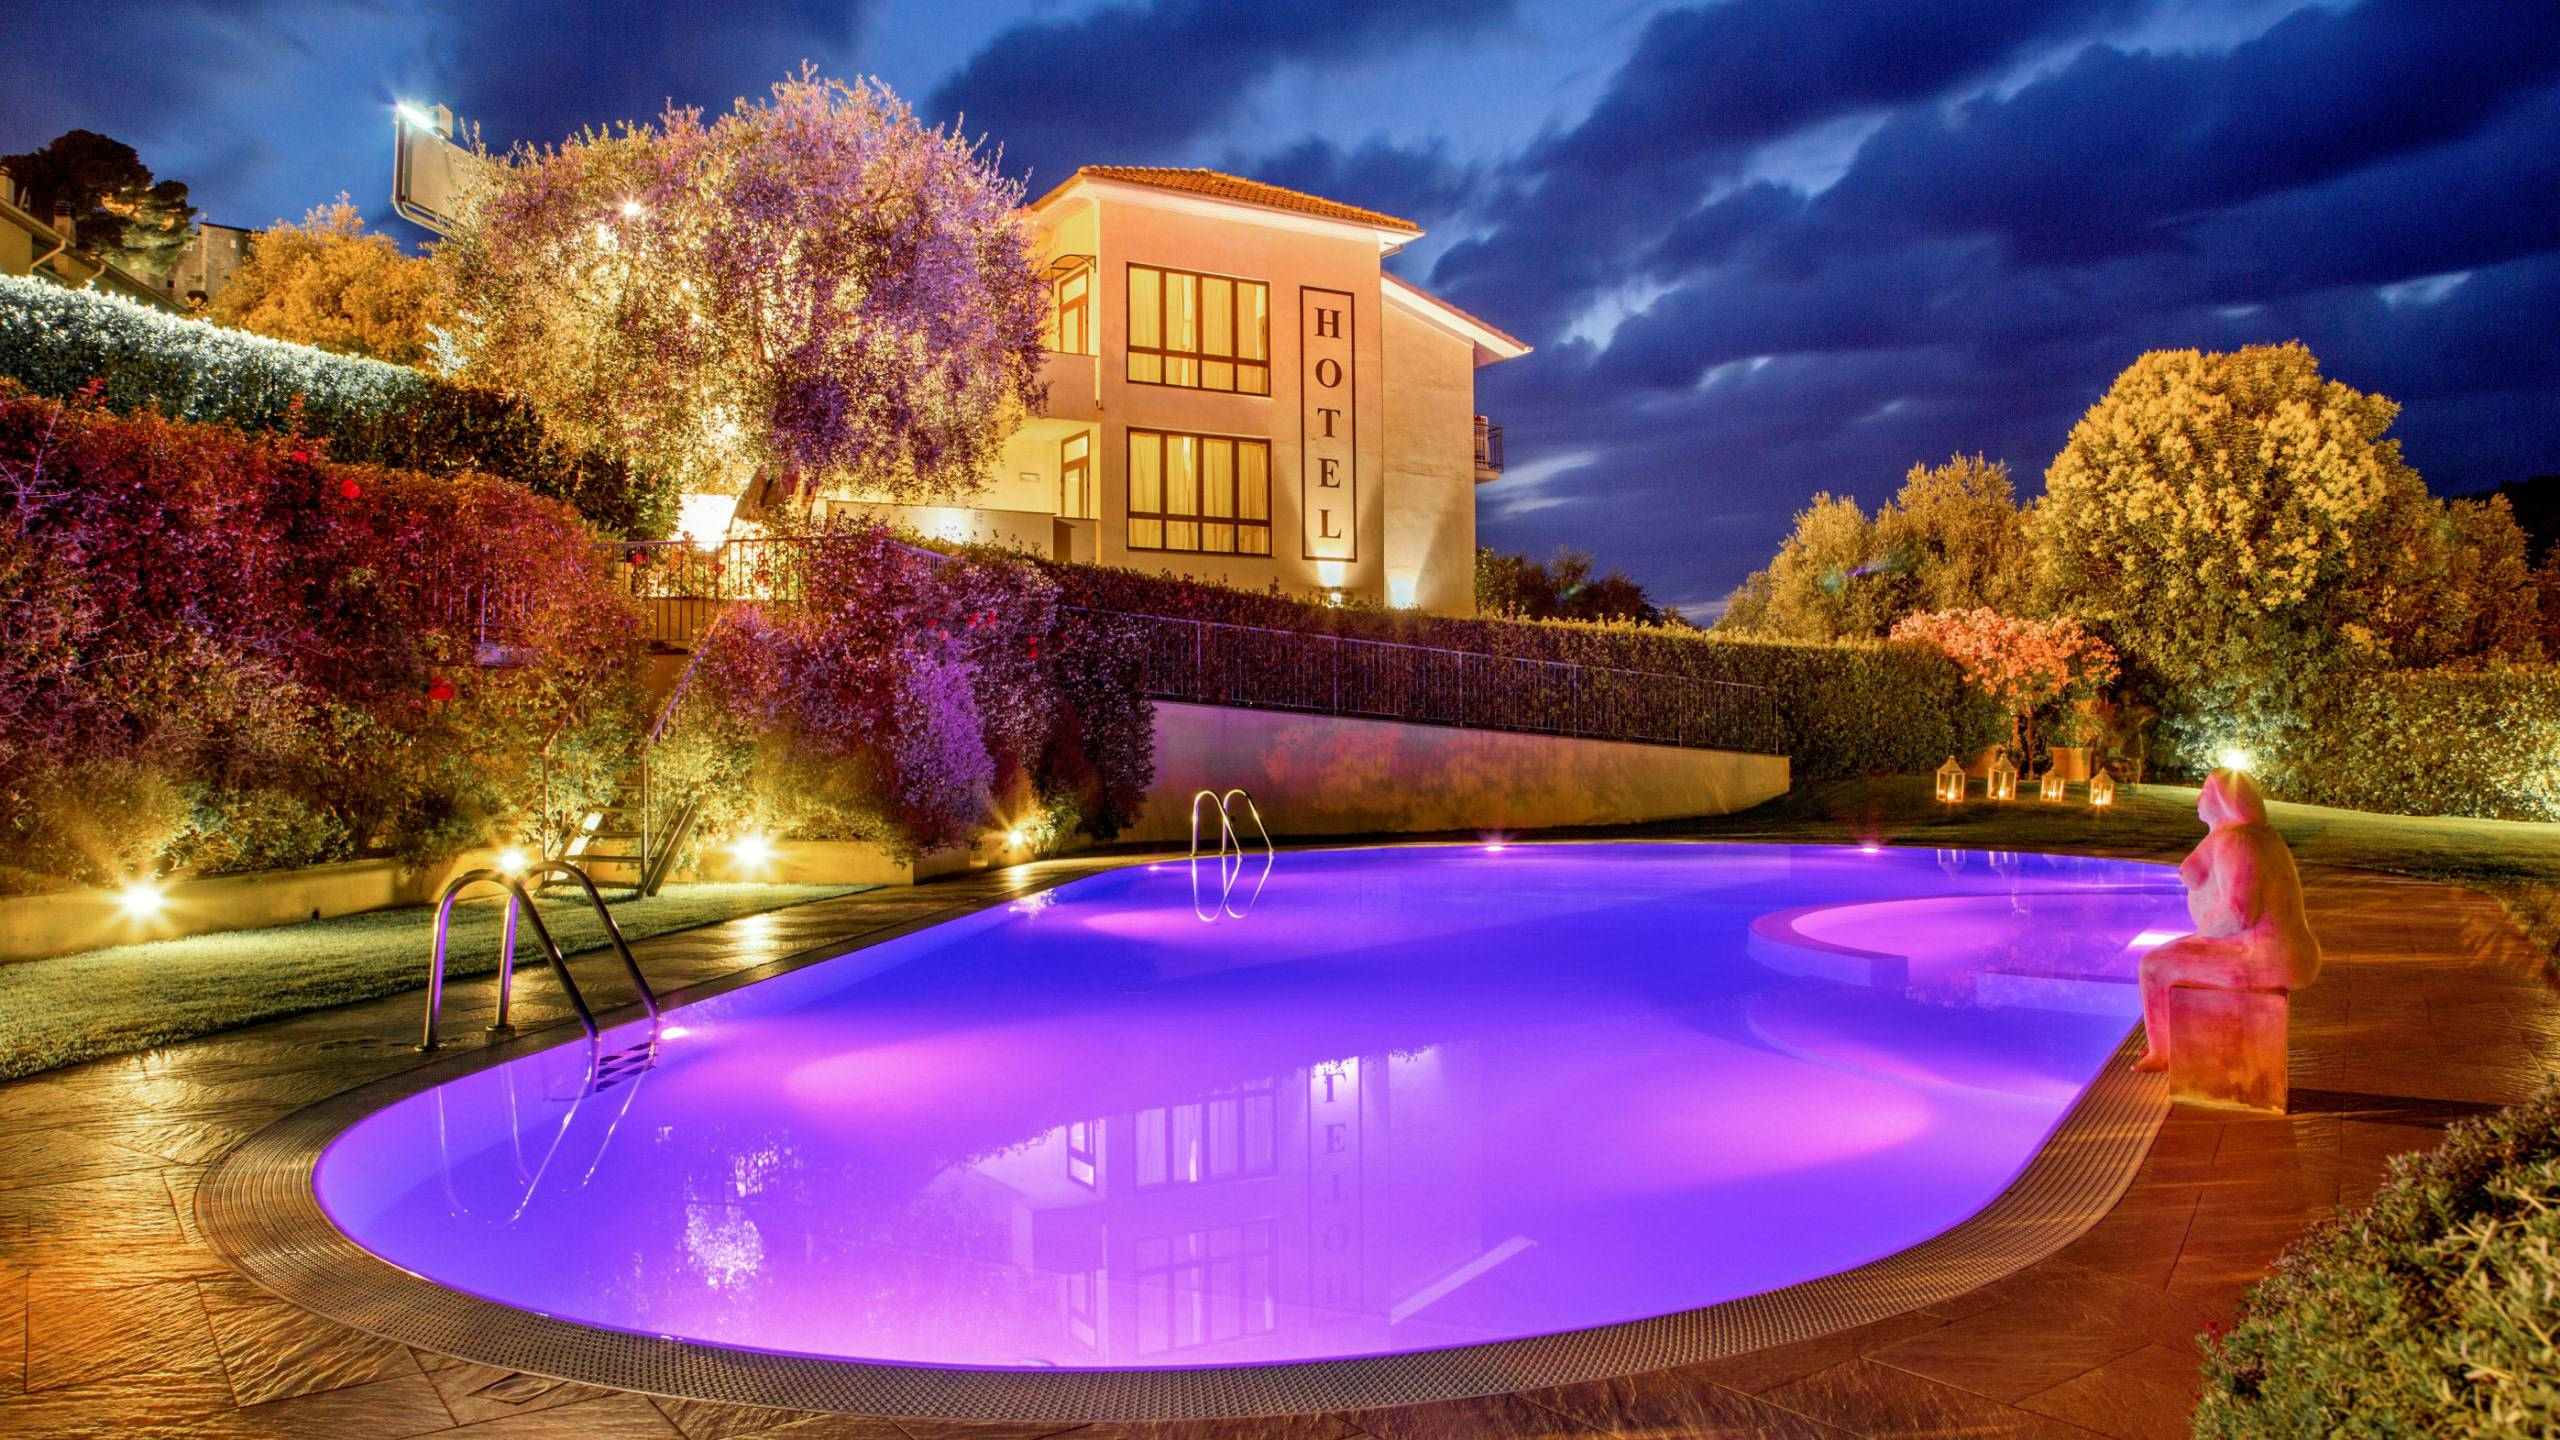 Hotel-Residence-Valle-del-Buttero-Capalbio-pool-82